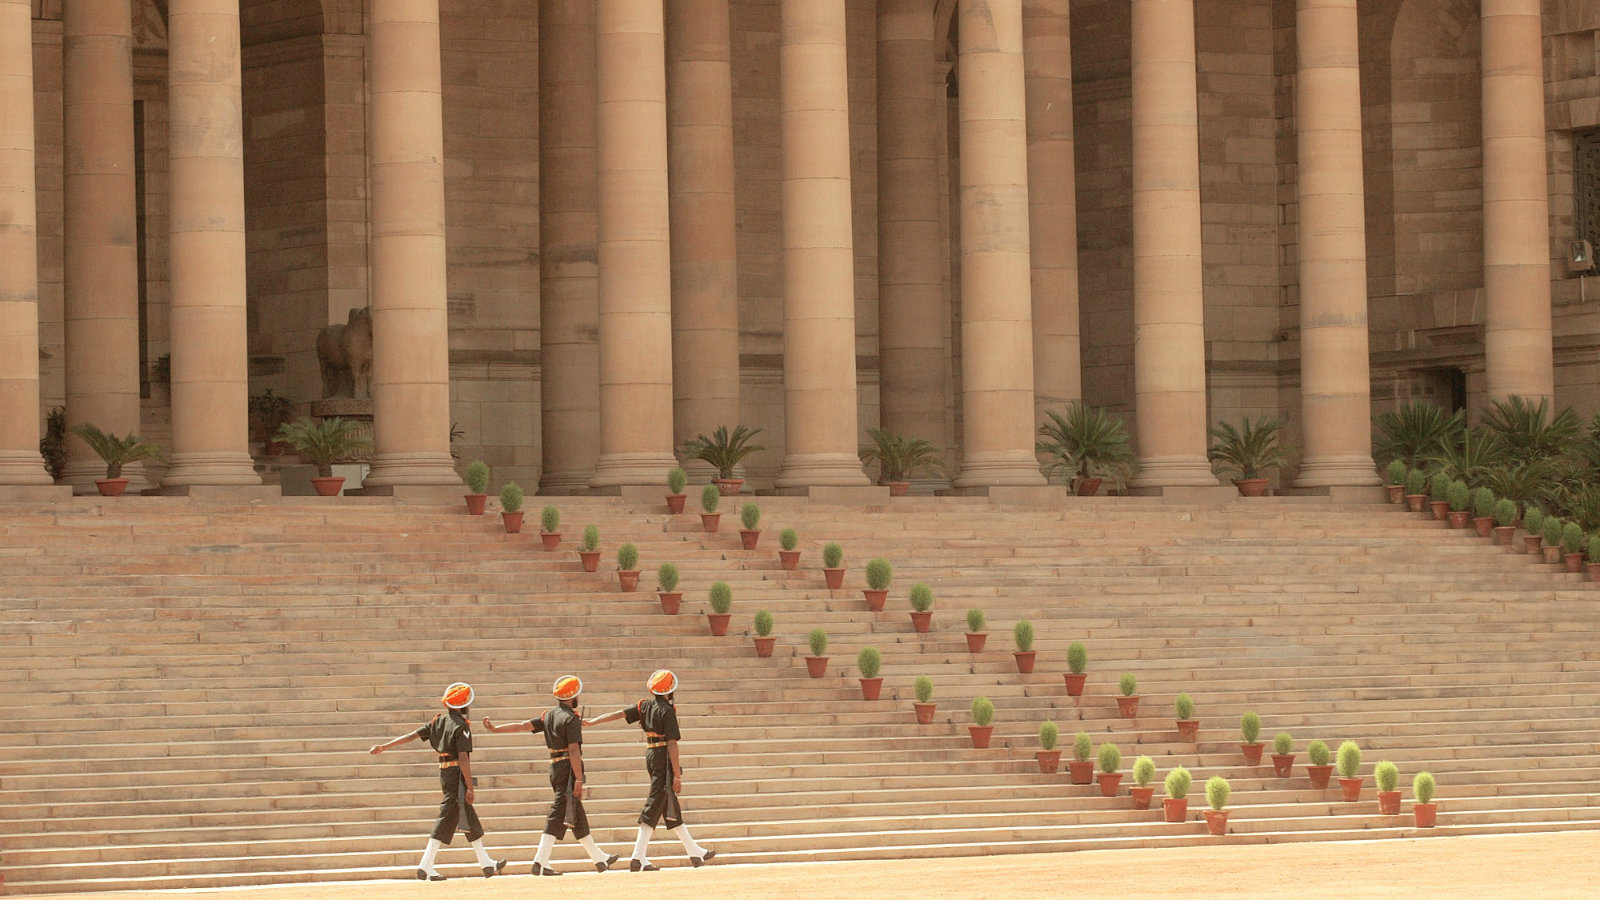 Indian Army soldiers march past Rashtrapati Bhavan. The building is the crowning glory of the British empire and architecture in India, designed by Sir Edwin Lutyens and completed in 1929, it is bigger than the Palace of Versailles.